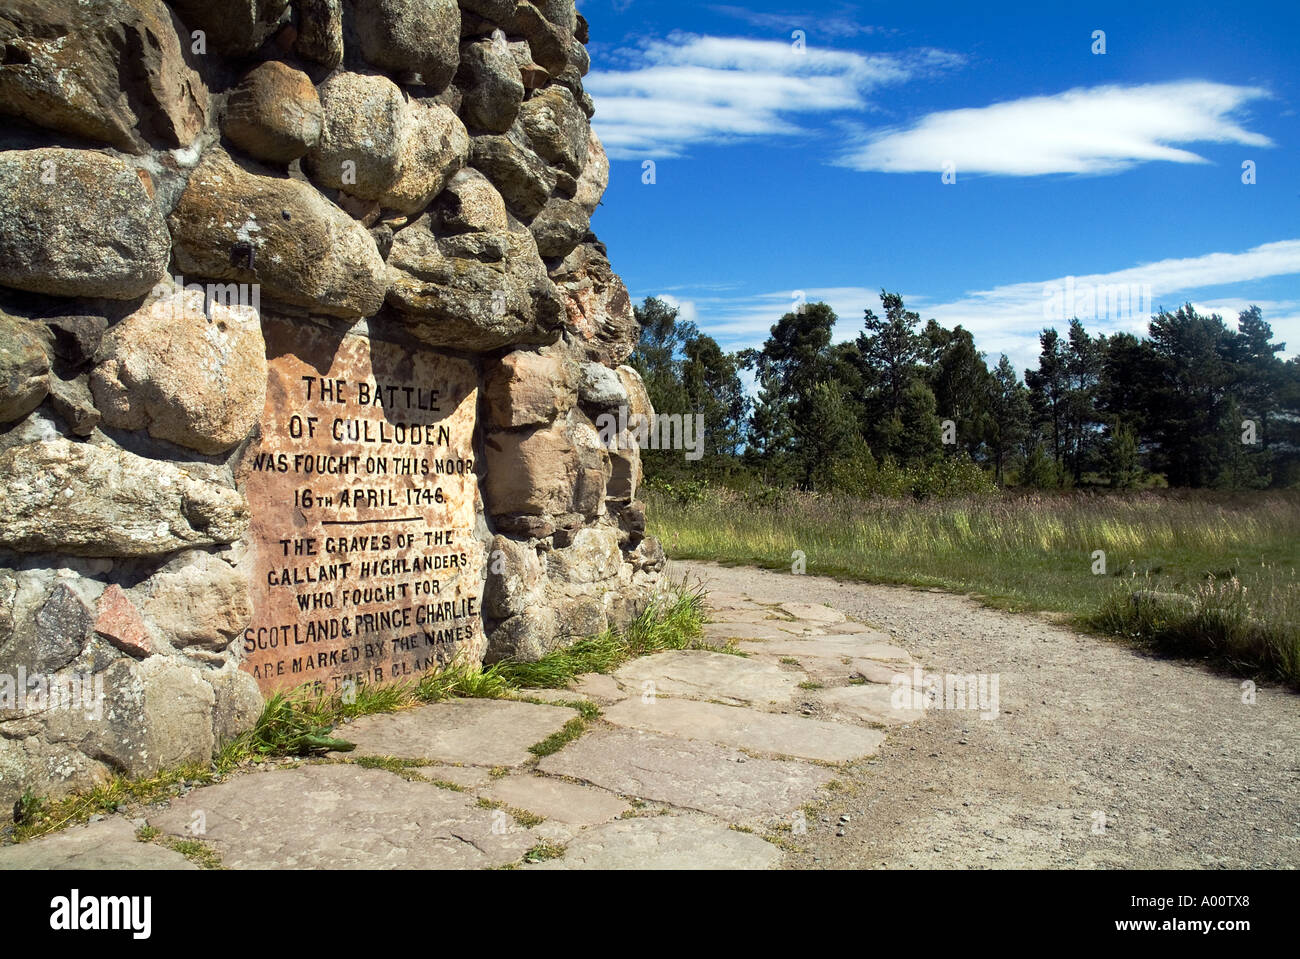 dh Battlefield CULLODEN MOOR INVERNESSSHIRE Memorial stone cairn on battle field scottish monument jacobite scotland monuments 1745 rebellion history Stock Photo